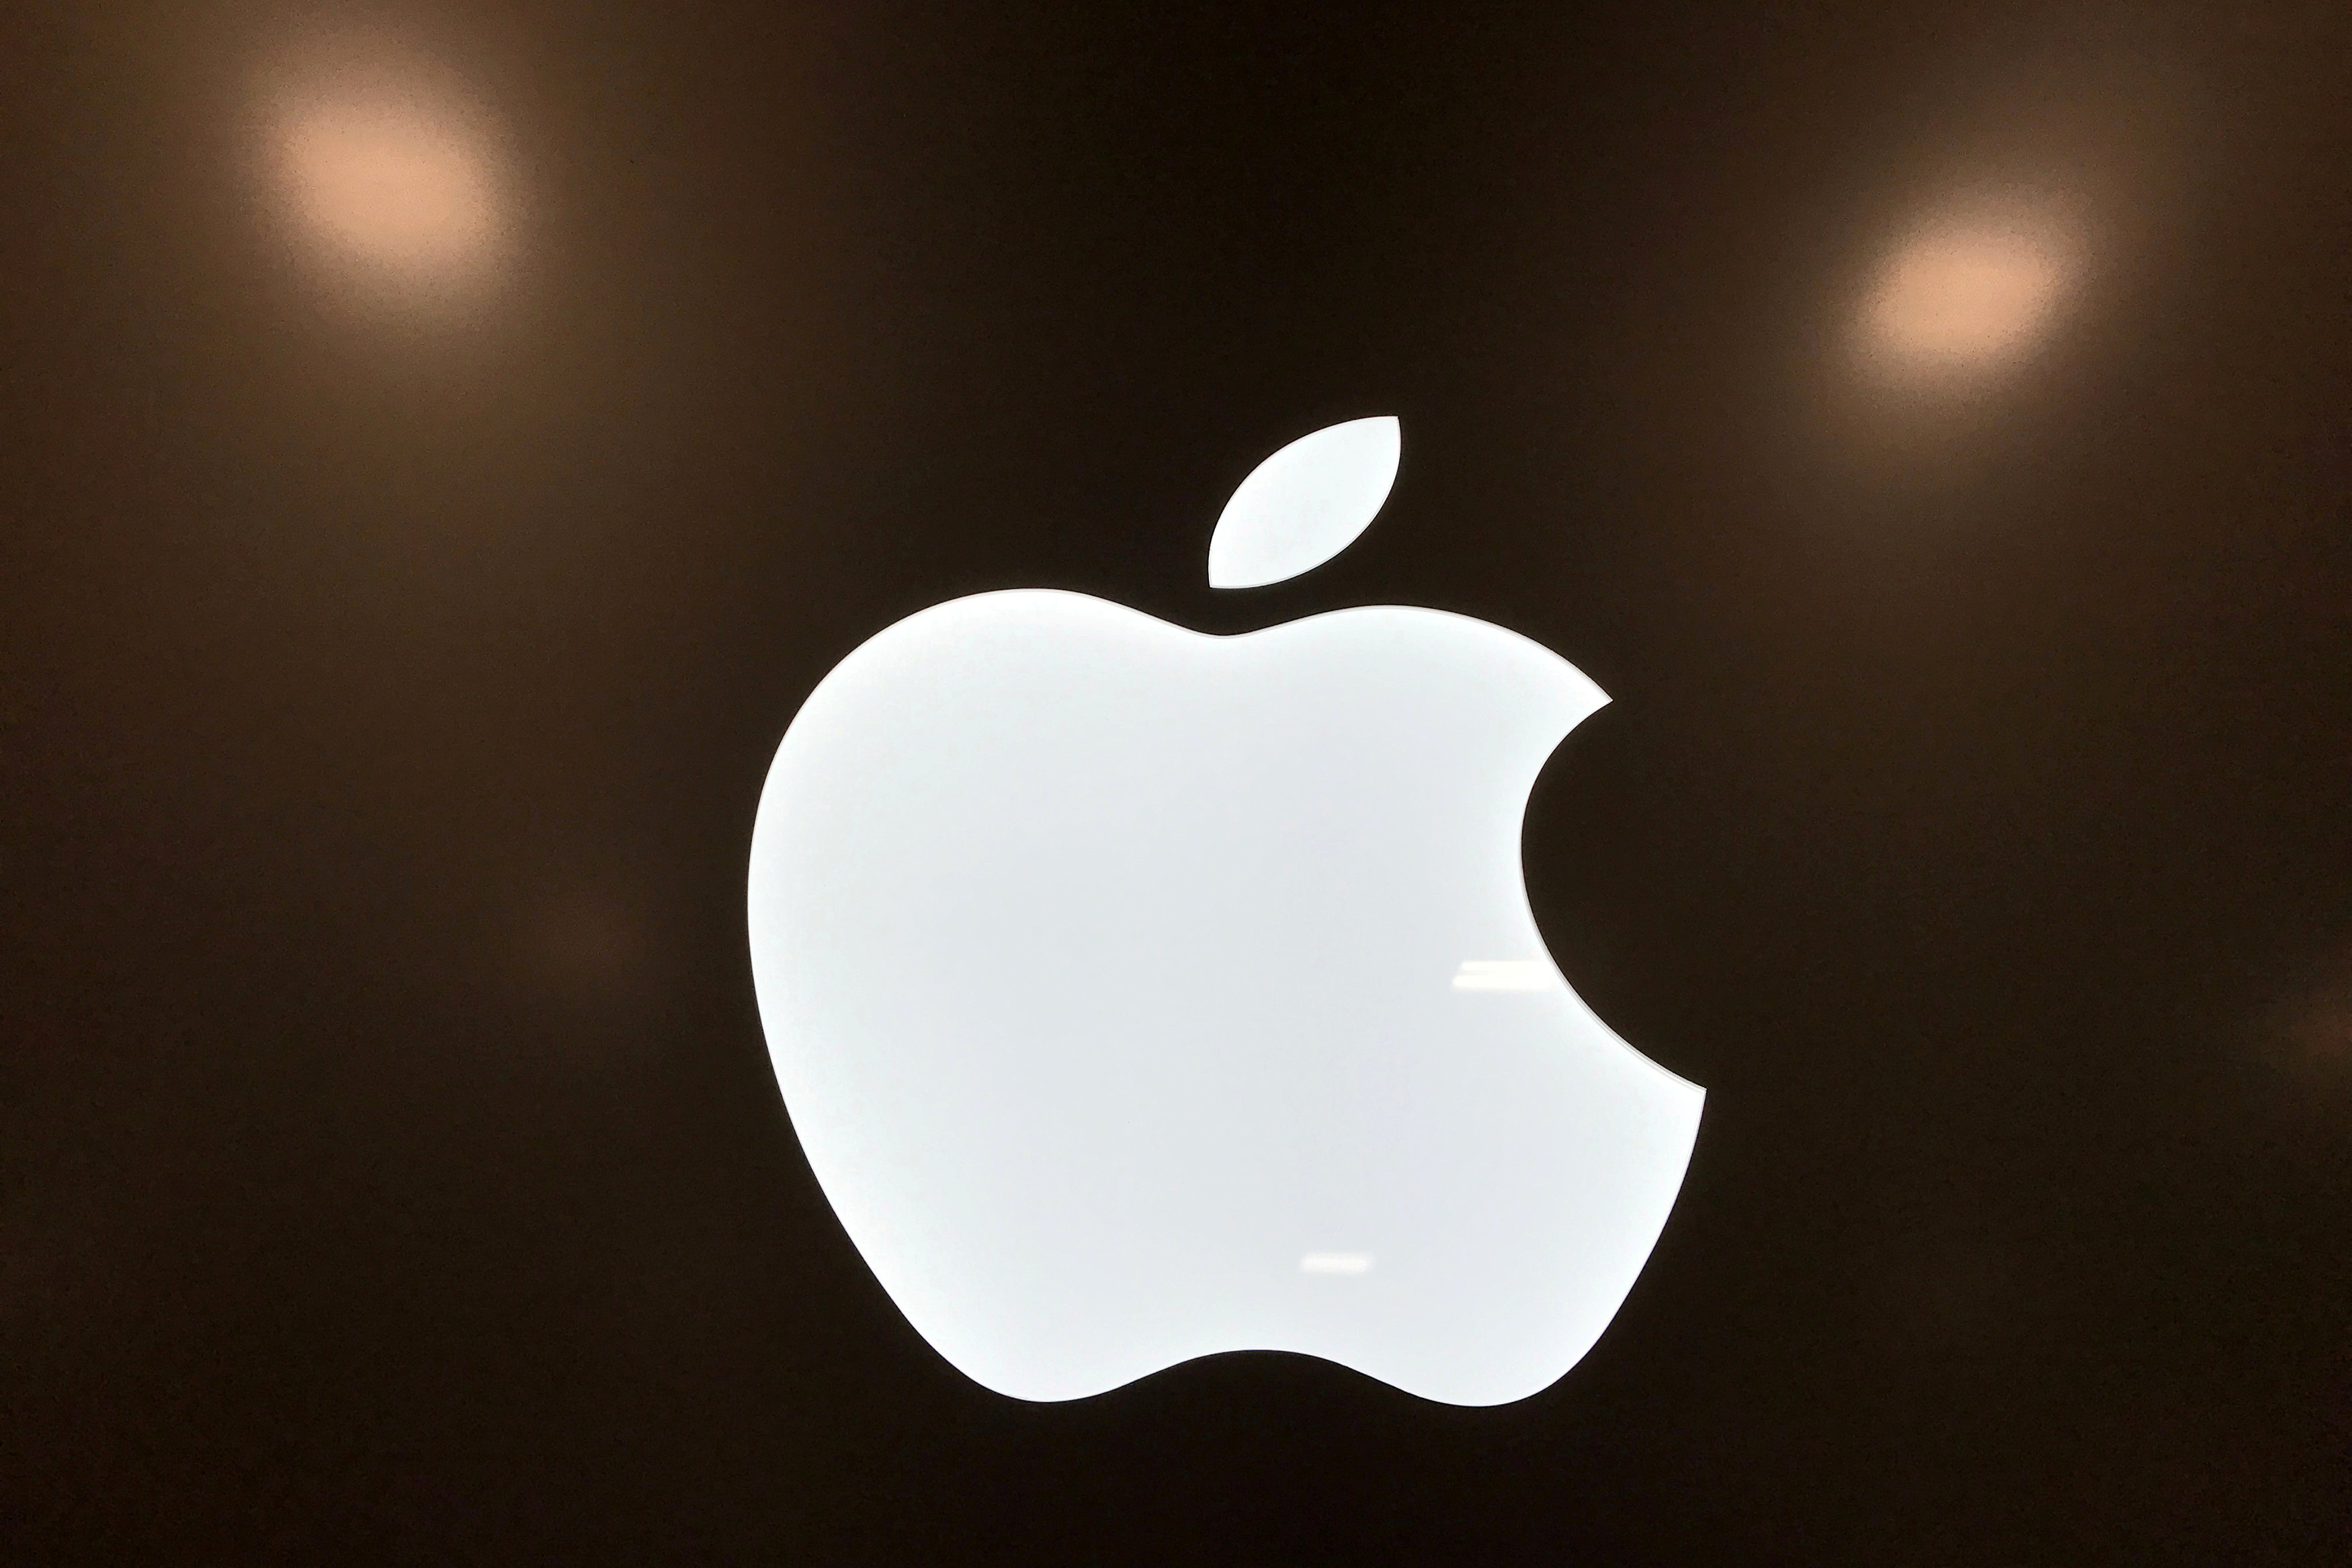 Apple self-driving car testing plan gives clues to tech programme